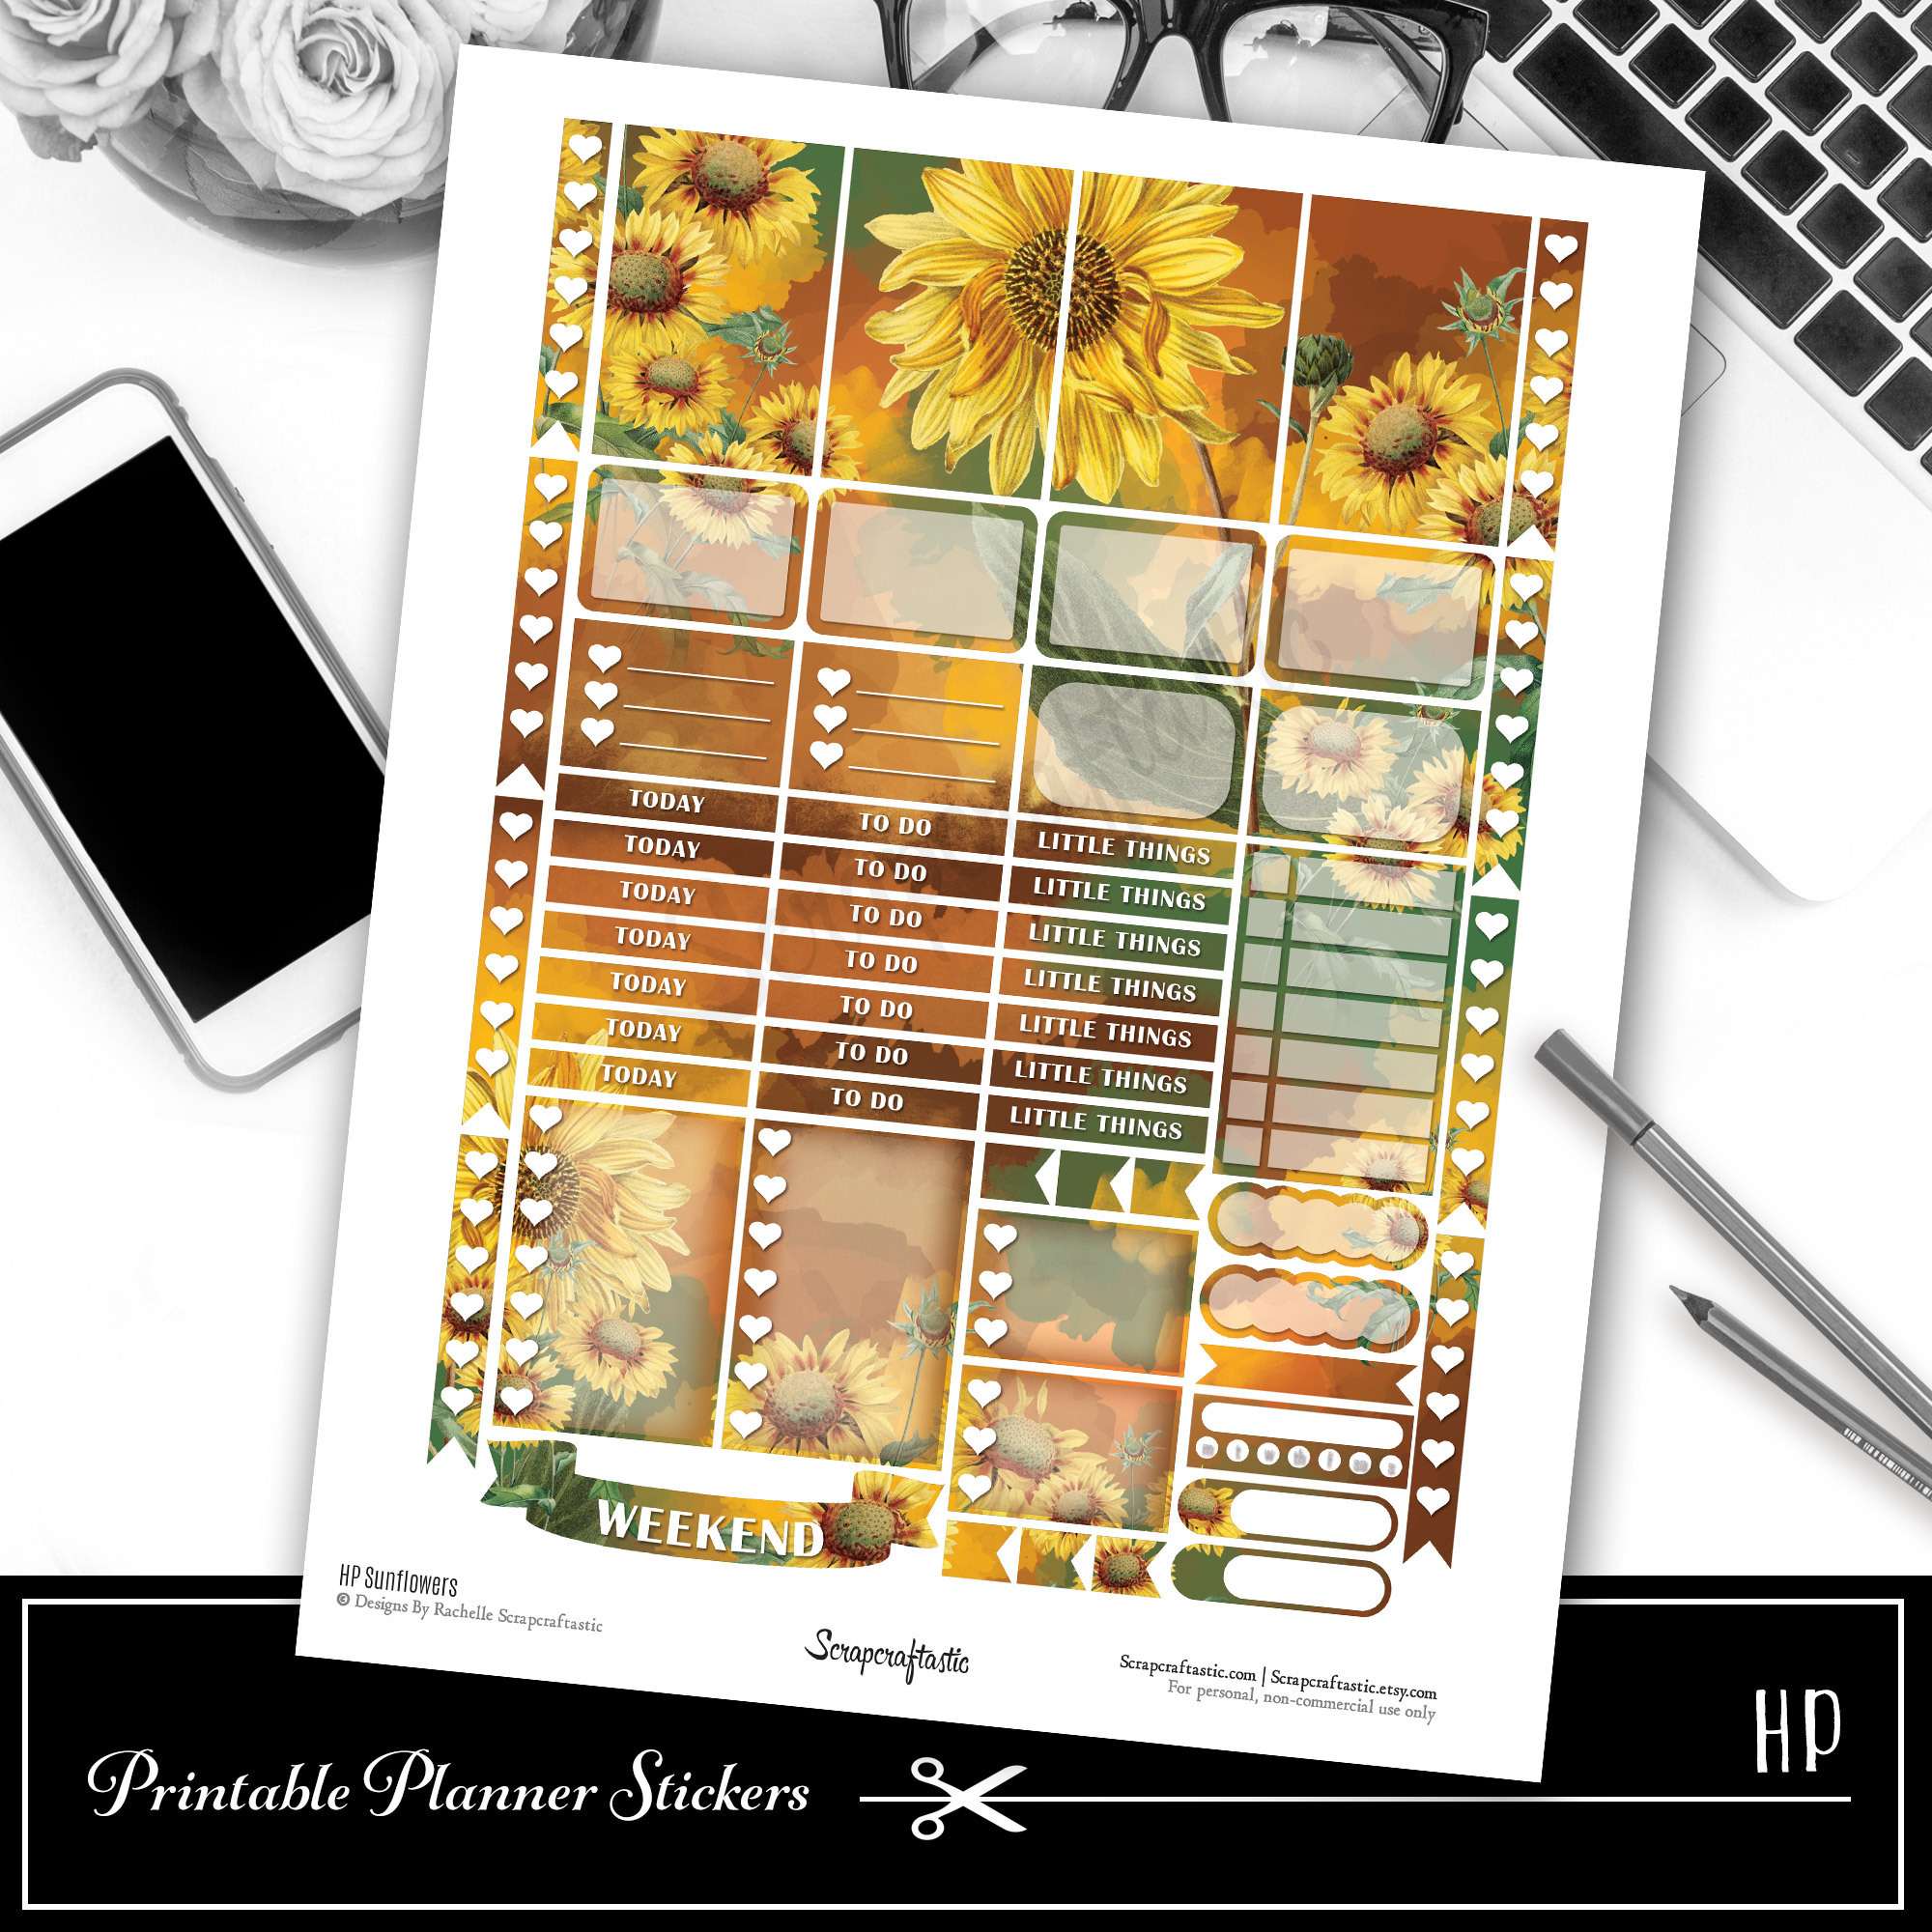 HP Sunflowers Printable Planner Stickers 01012